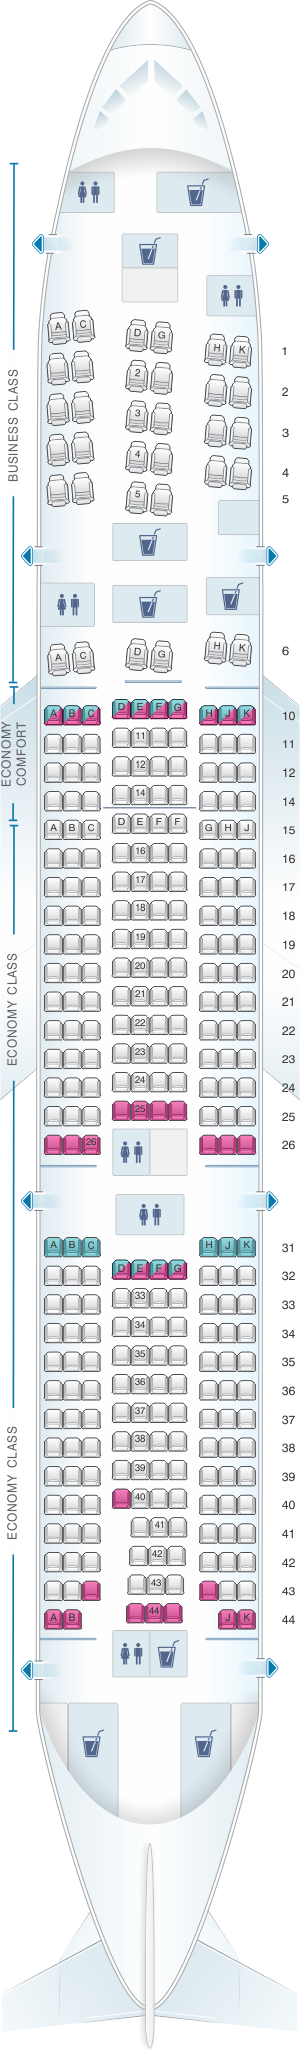 Seat map for KLM Boeing B777 200ER New World Business Class